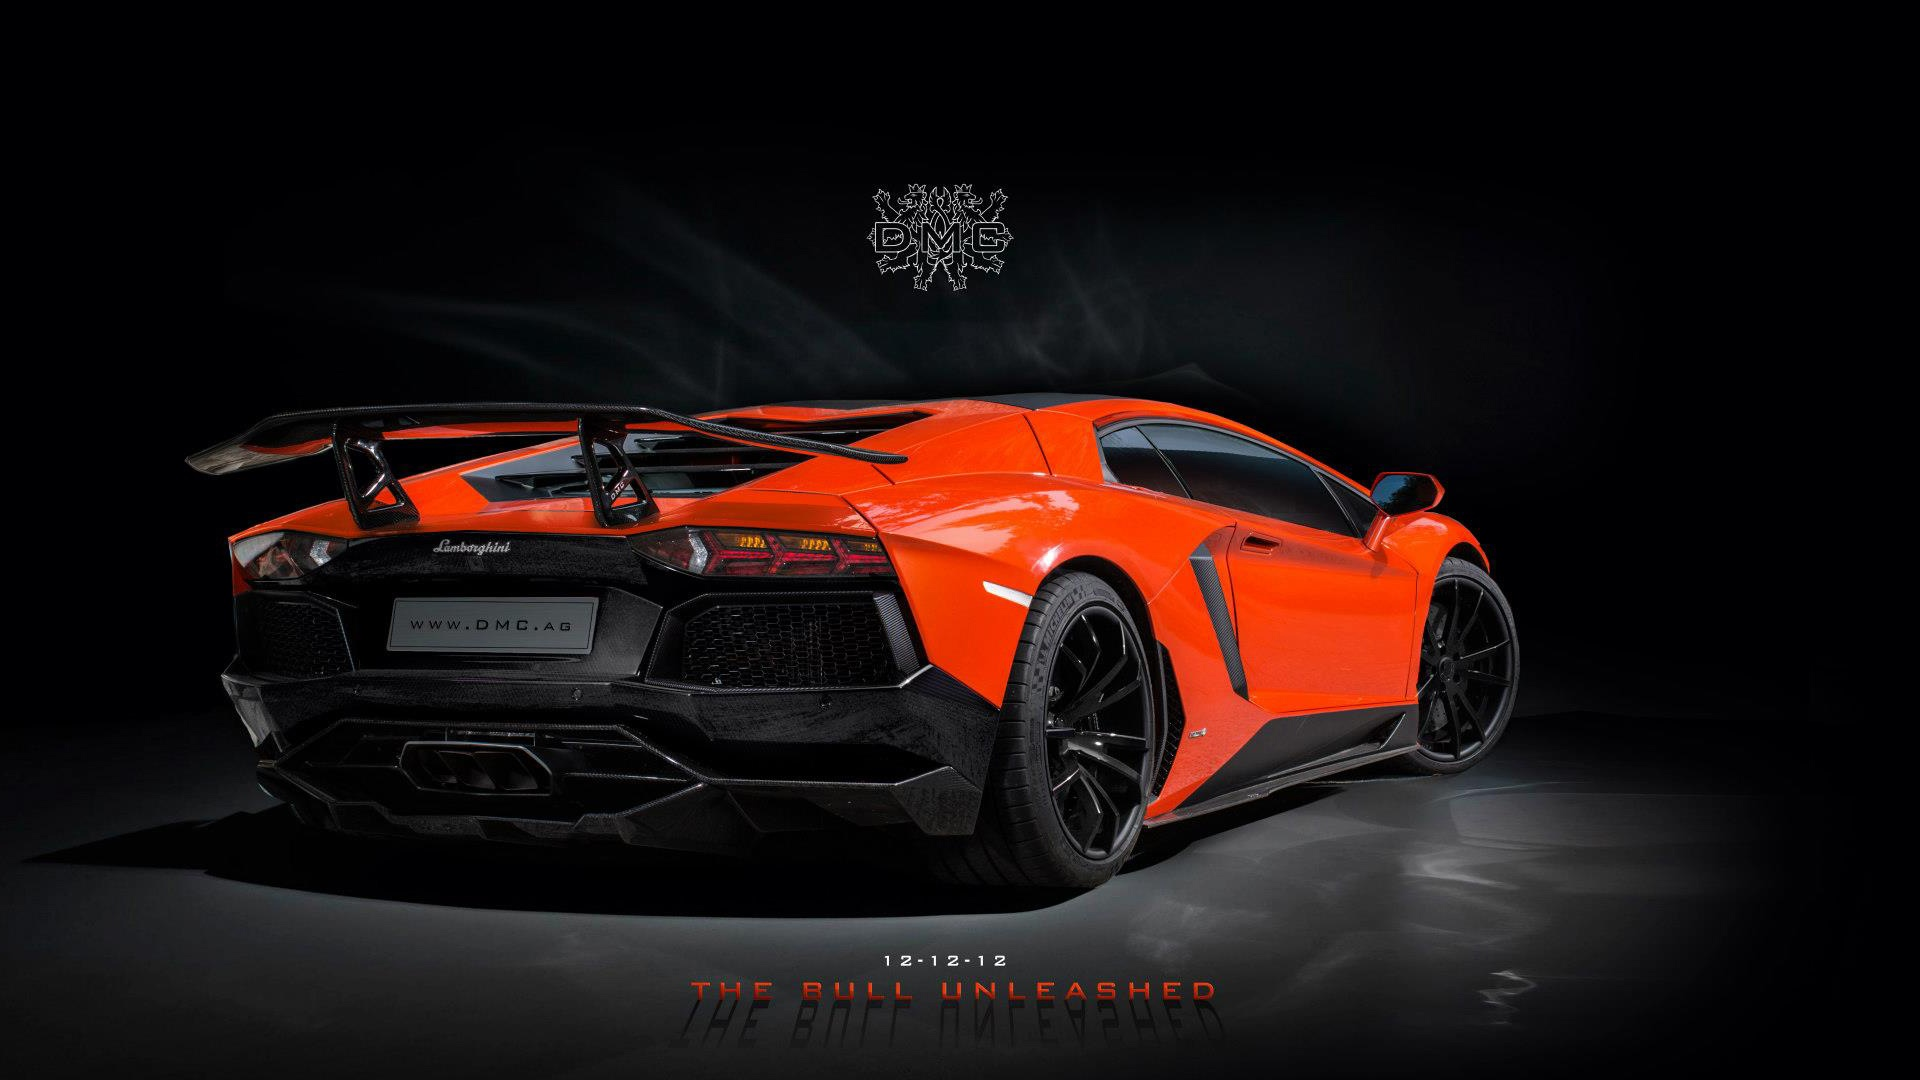 Lamborghini Aventador Roadster Wallpaper Hd 1920x1080 Black